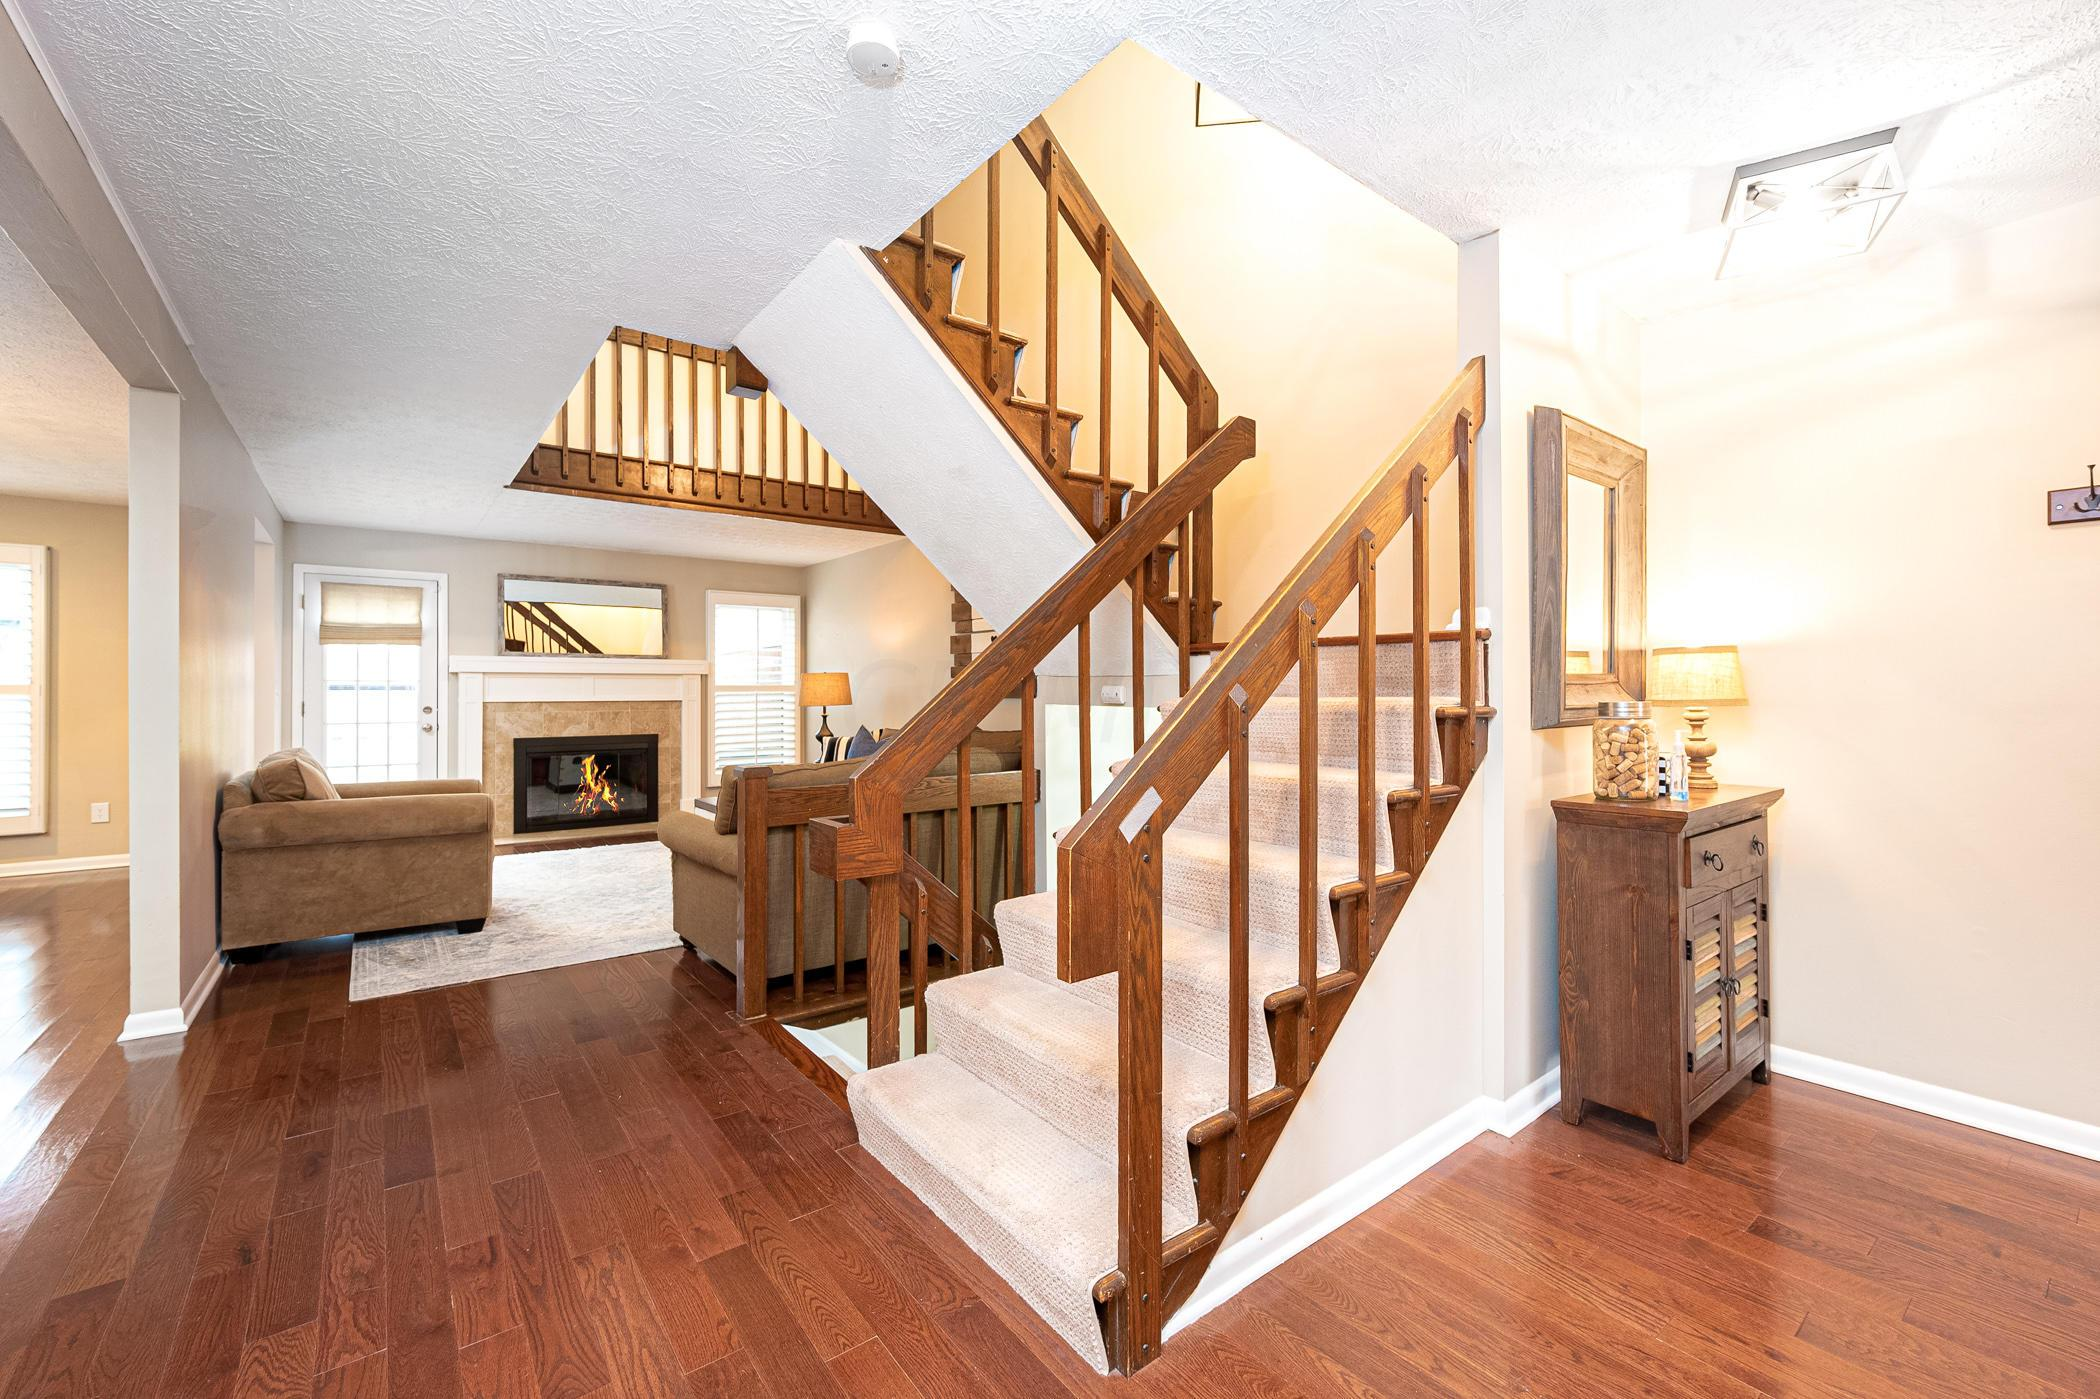 4523 Carriage Hill Lane, Columbus, Ohio 43220, 3 Bedrooms Bedrooms, ,3 BathroomsBathrooms,Residential,For Sale,Carriage Hill,221000629